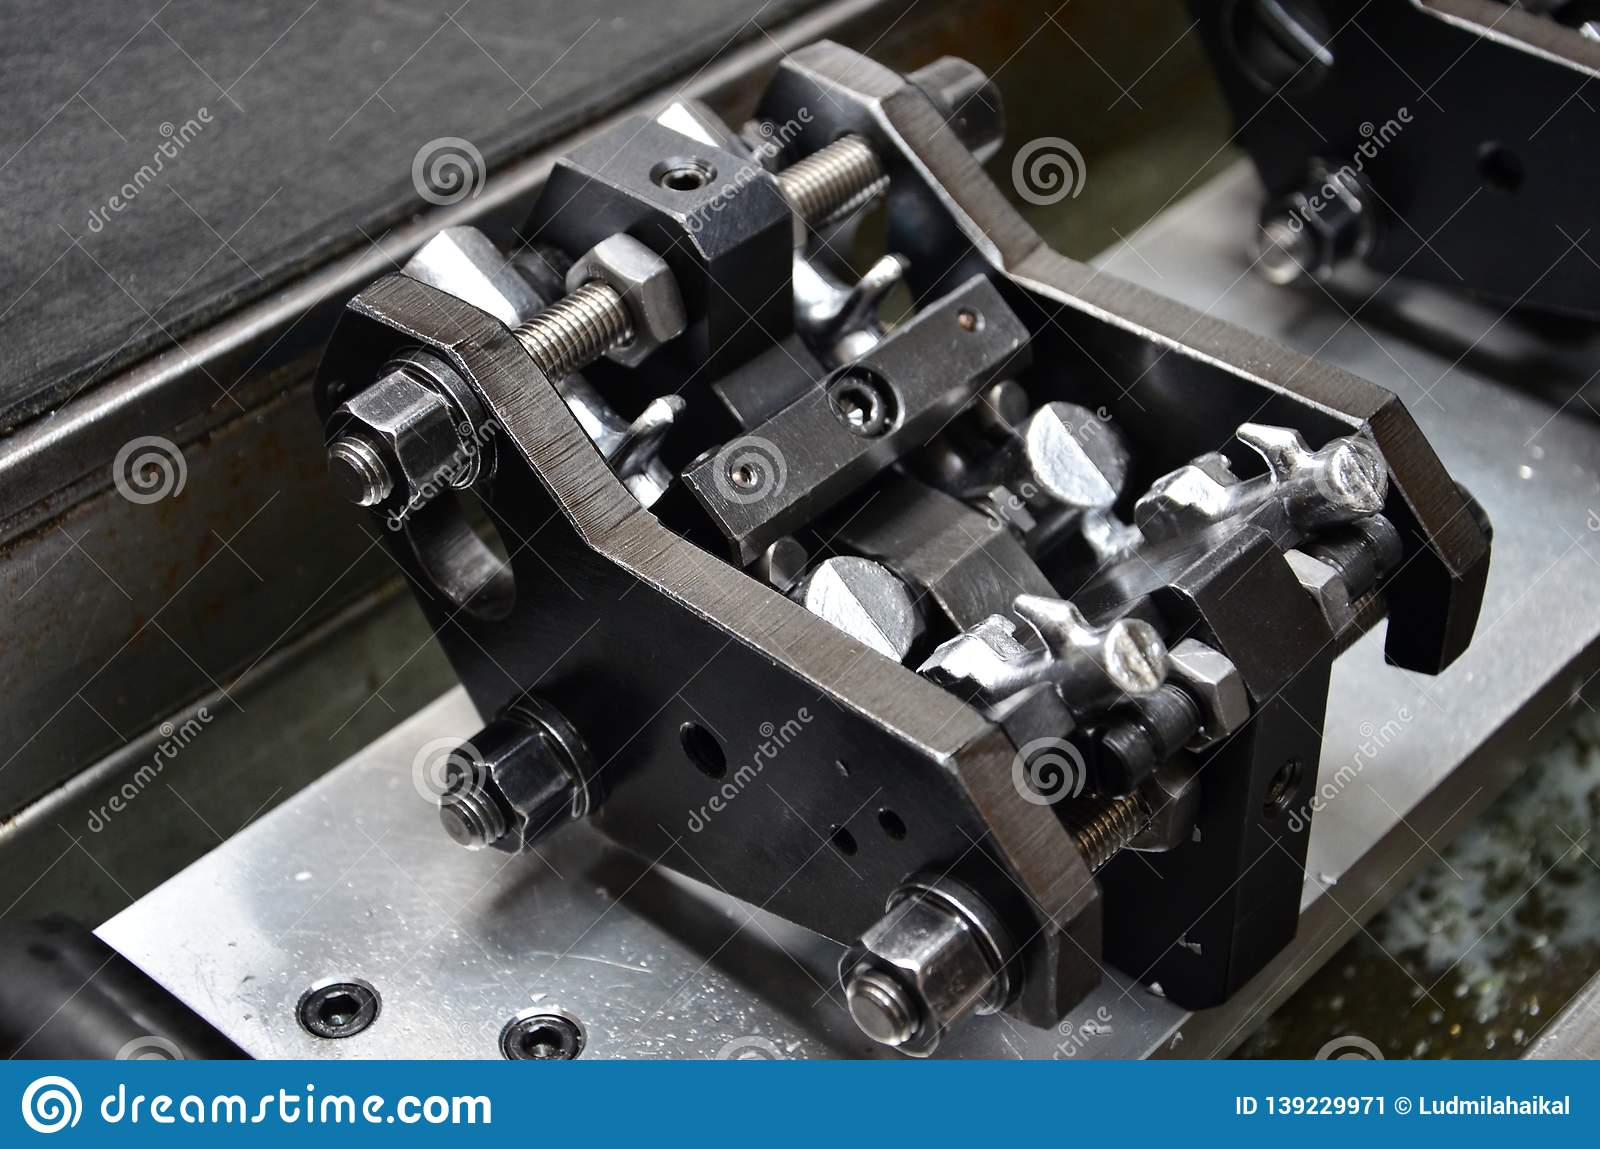 Preparation Of Parts Of Airbrush And Spray Gun For CNC Lathe